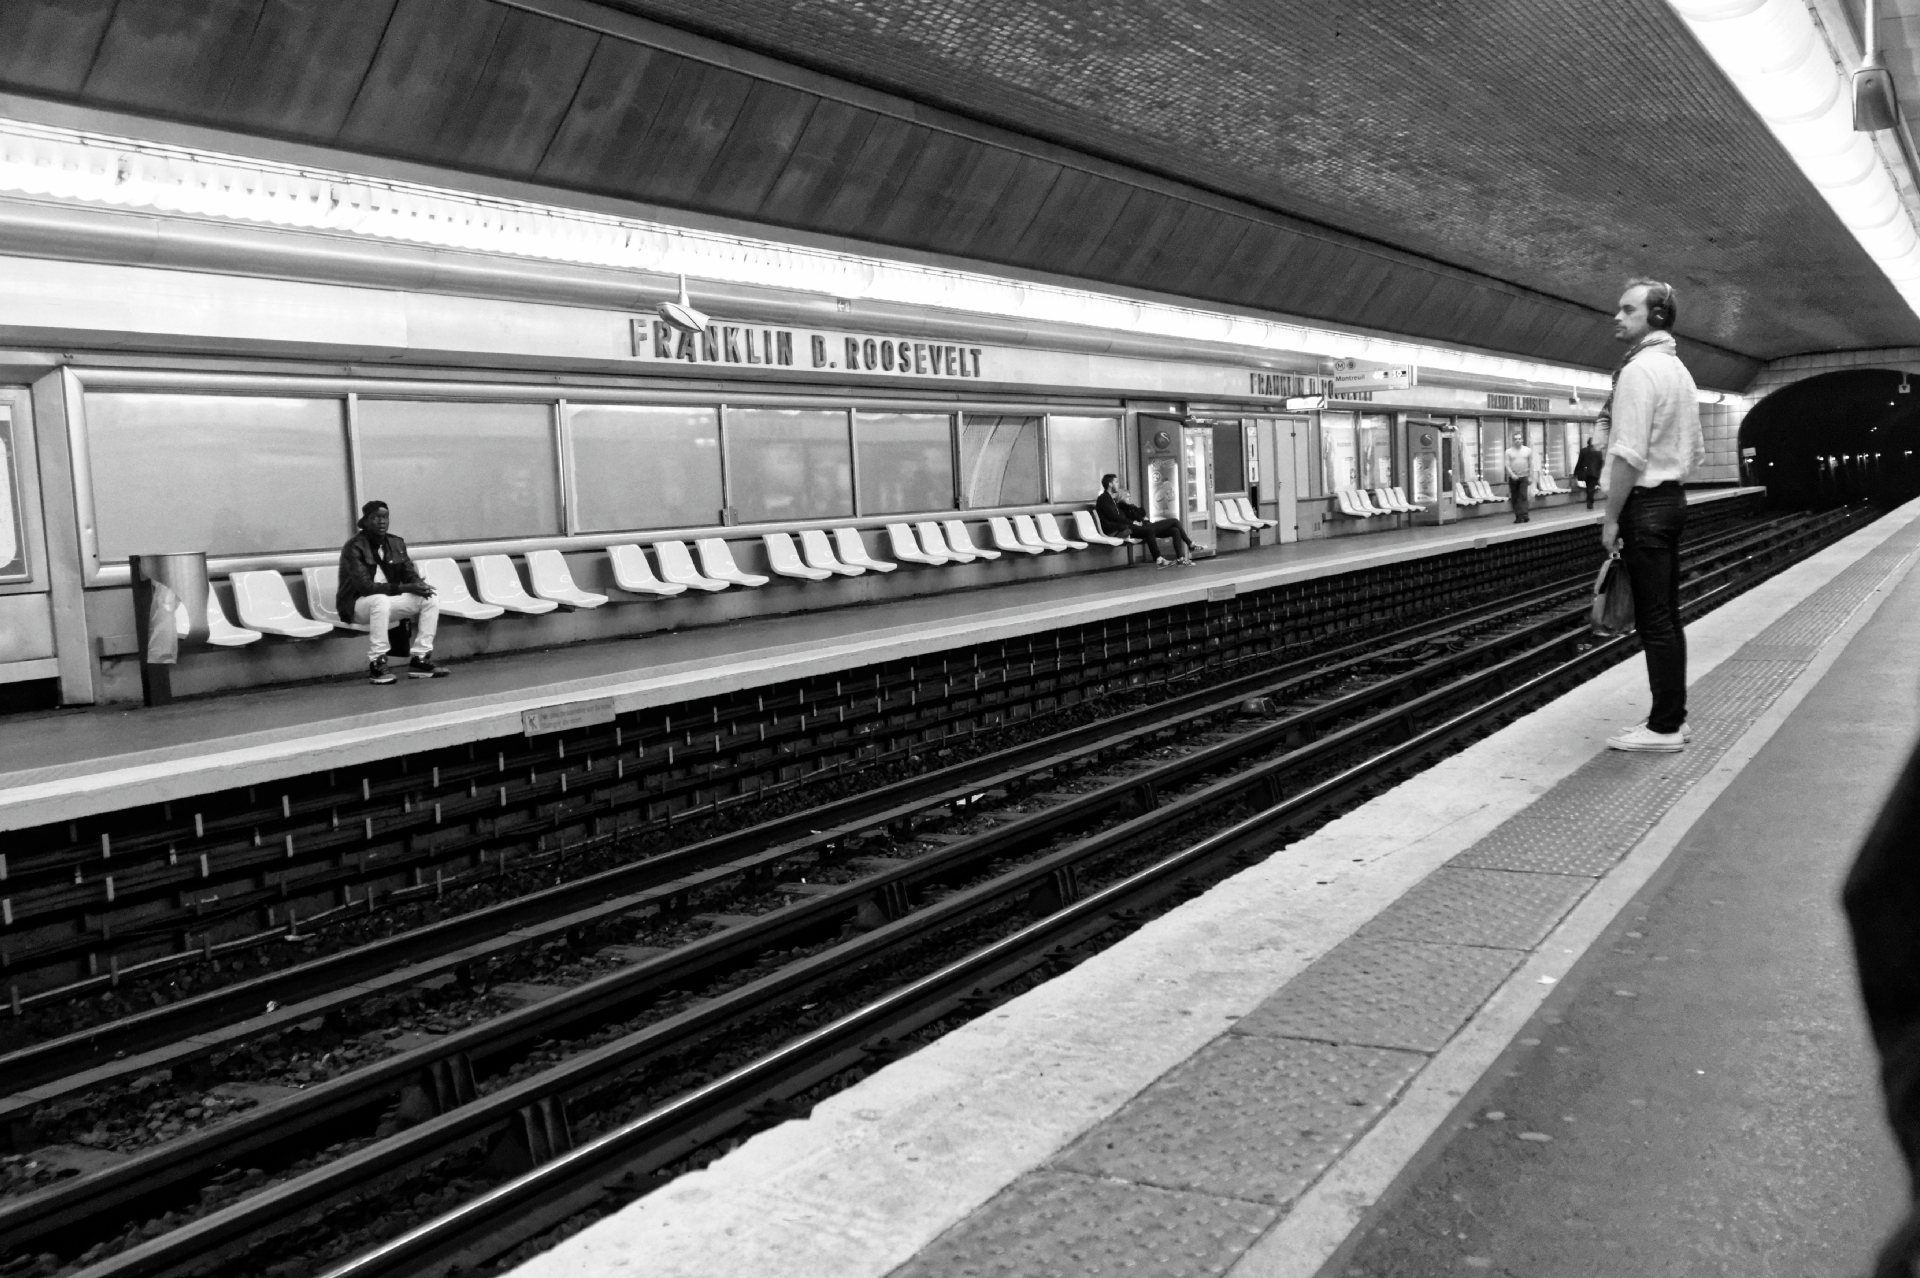 Train Platform in Paris image by ©akin abayomi